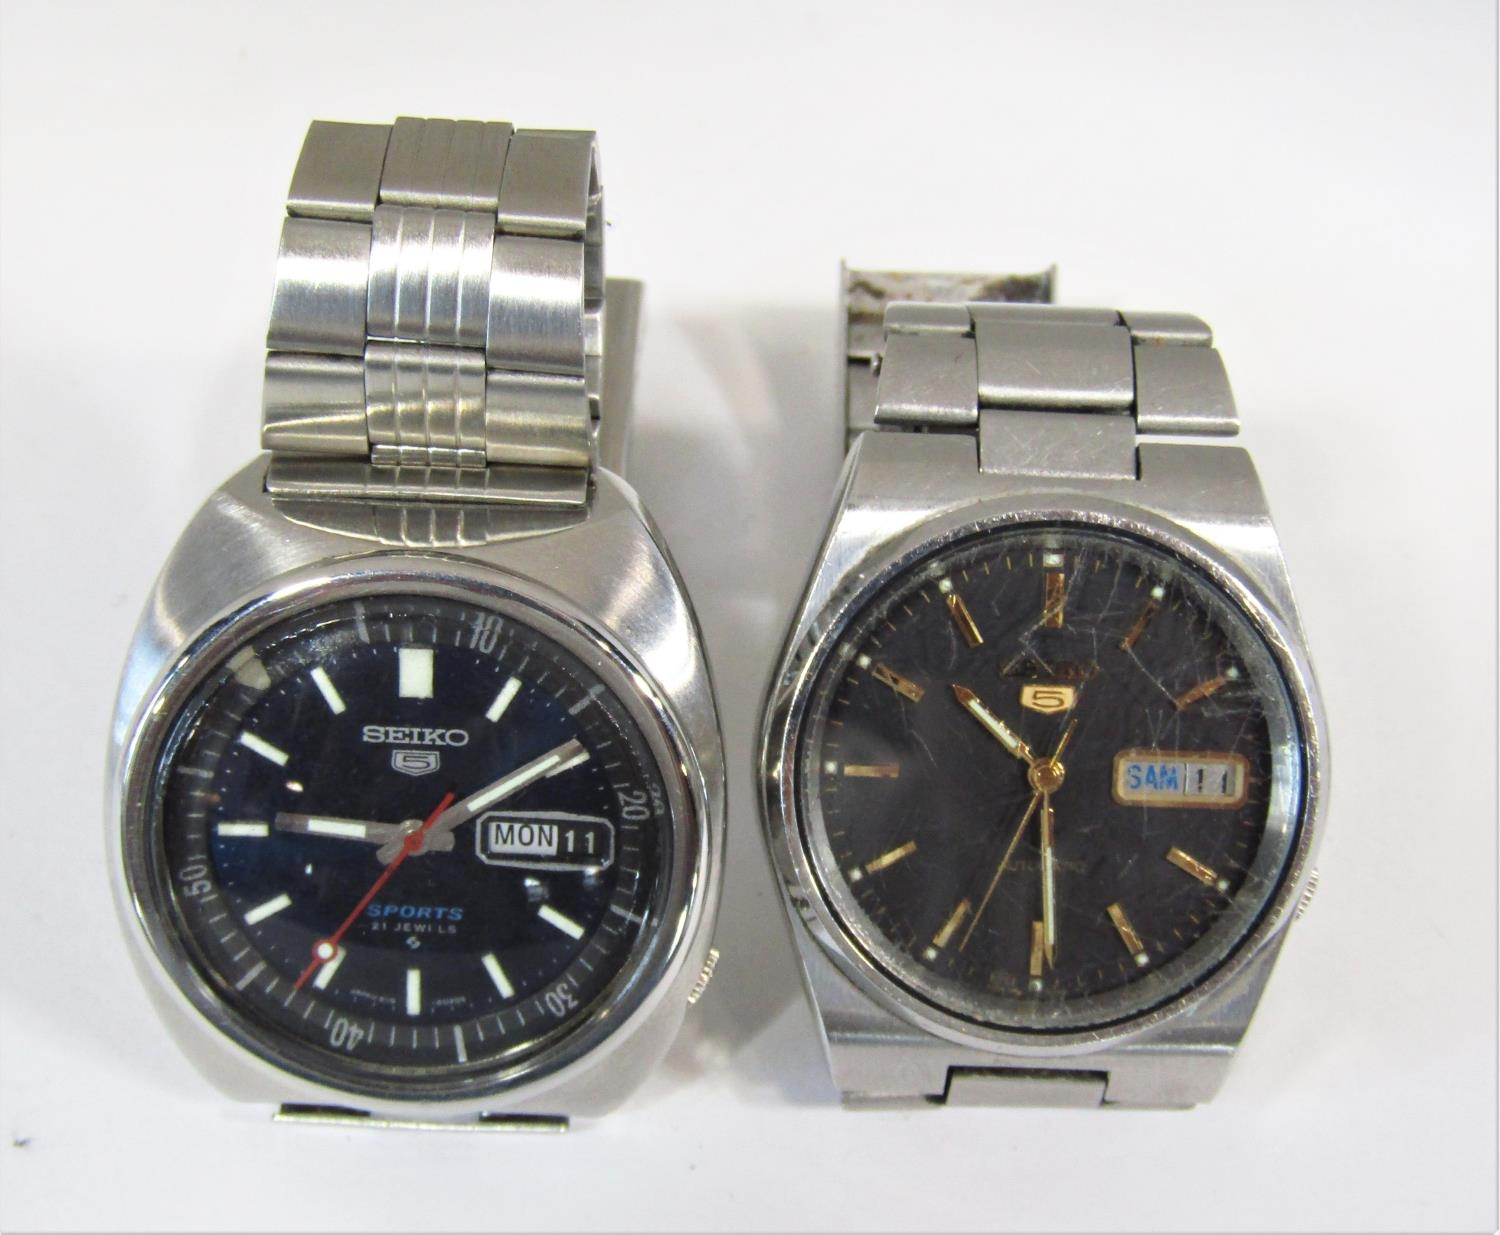 Seiko 5 automatic gents wristwatch, stainless steel case work, black dial with day date aperture